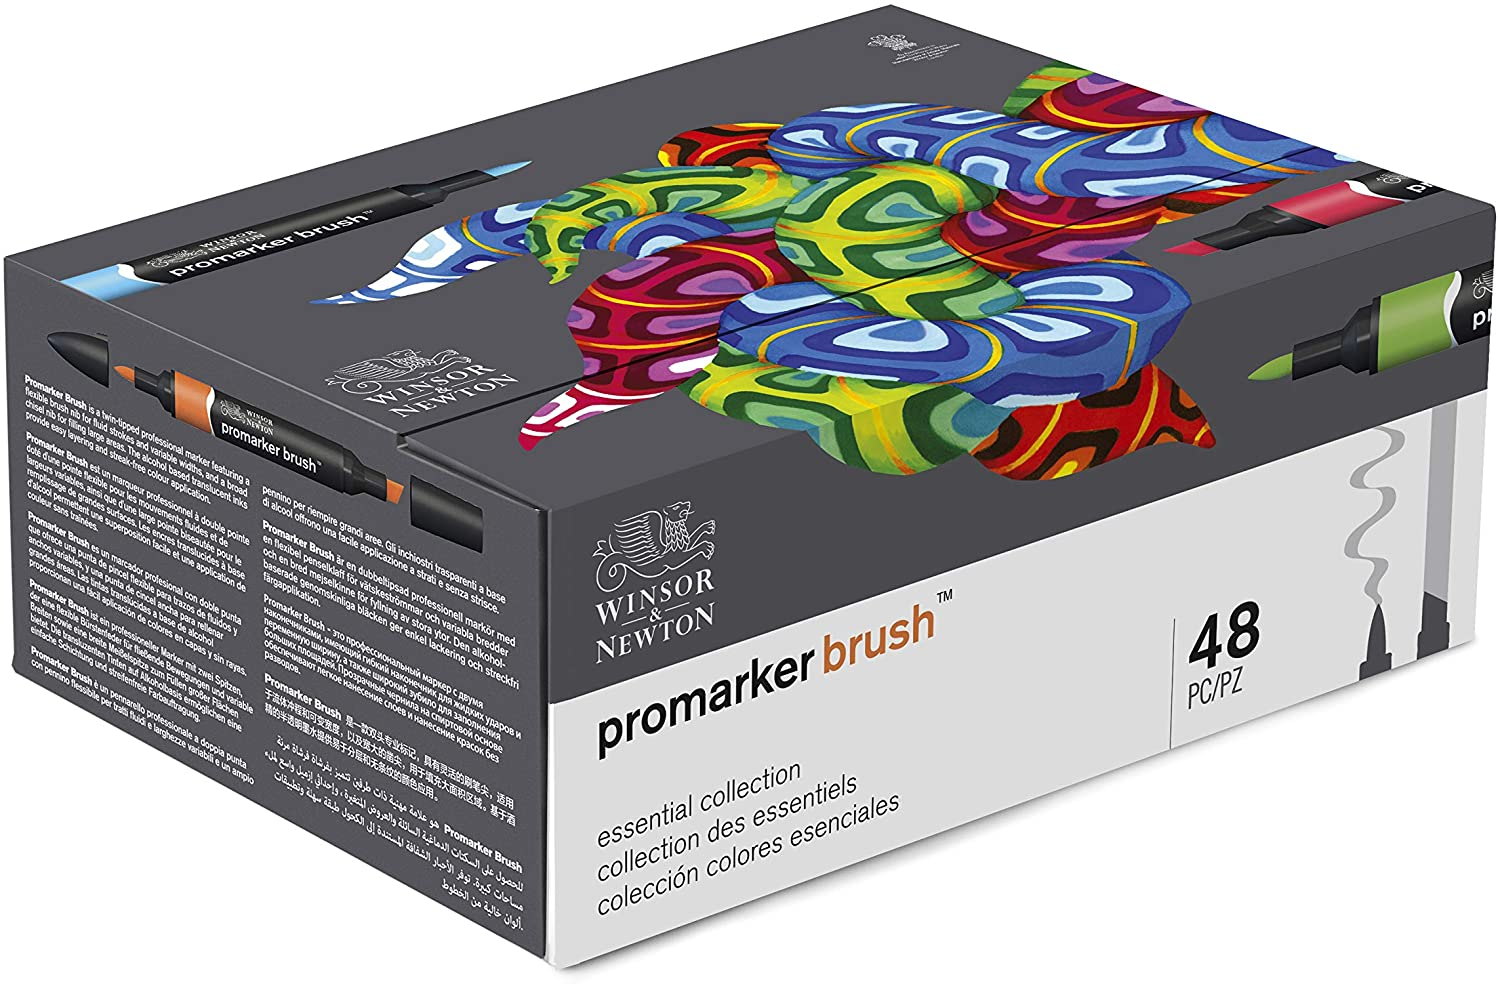 Winsor & Newton Promarker Brush, Set of 48, Essential Collection